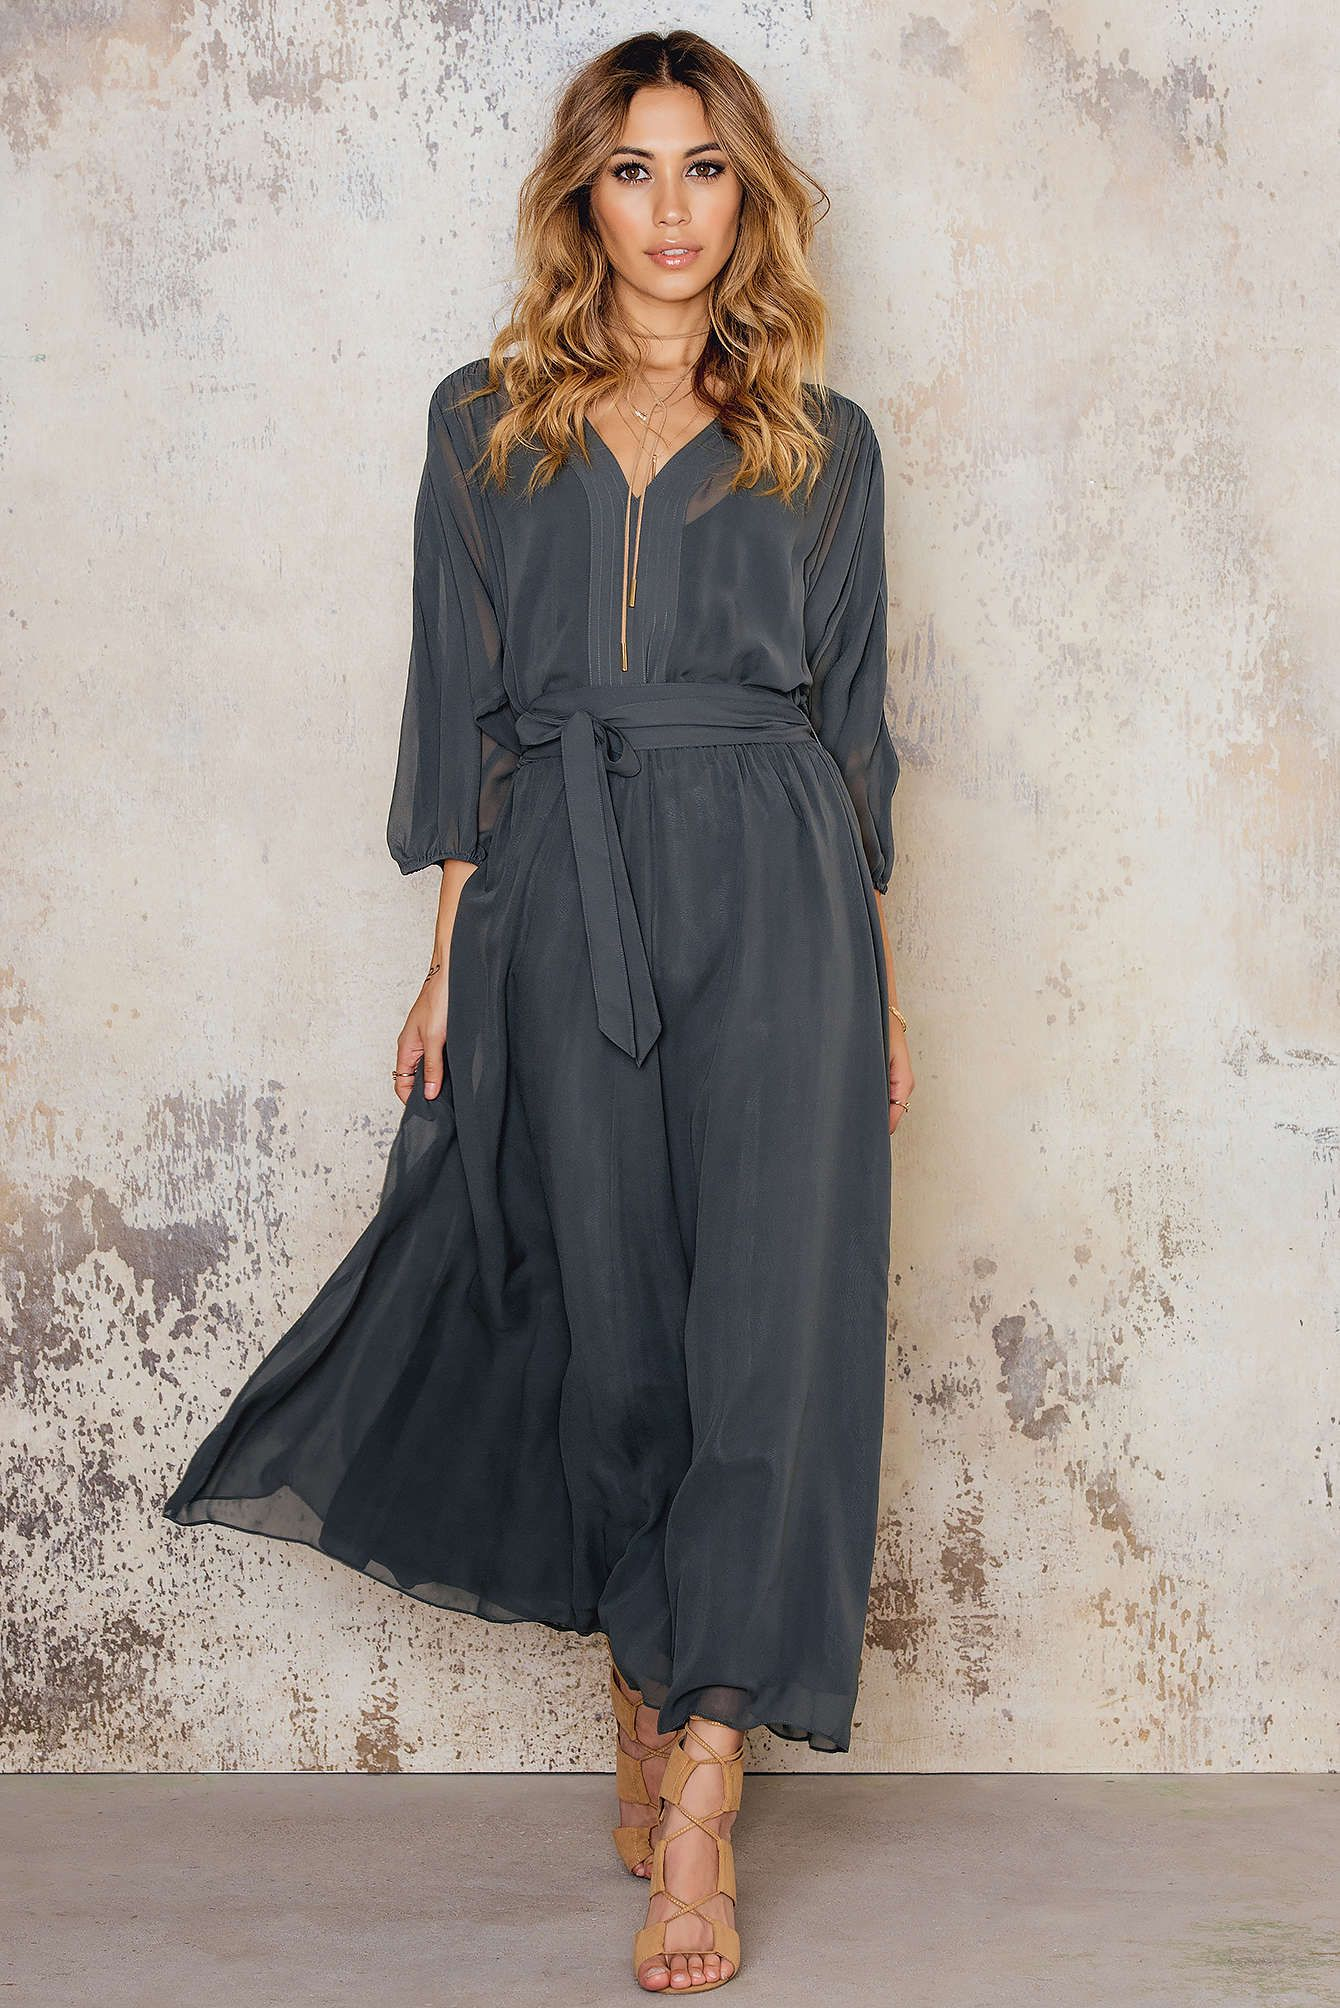 Get ready and feel the flow with this love! Silk Chiffon Belt Dress by Filippa K comes in Palmtree and features 3/4 sleeve, dramatic ankle long skirt and removable belt. For the perfect look match it with flat sandals